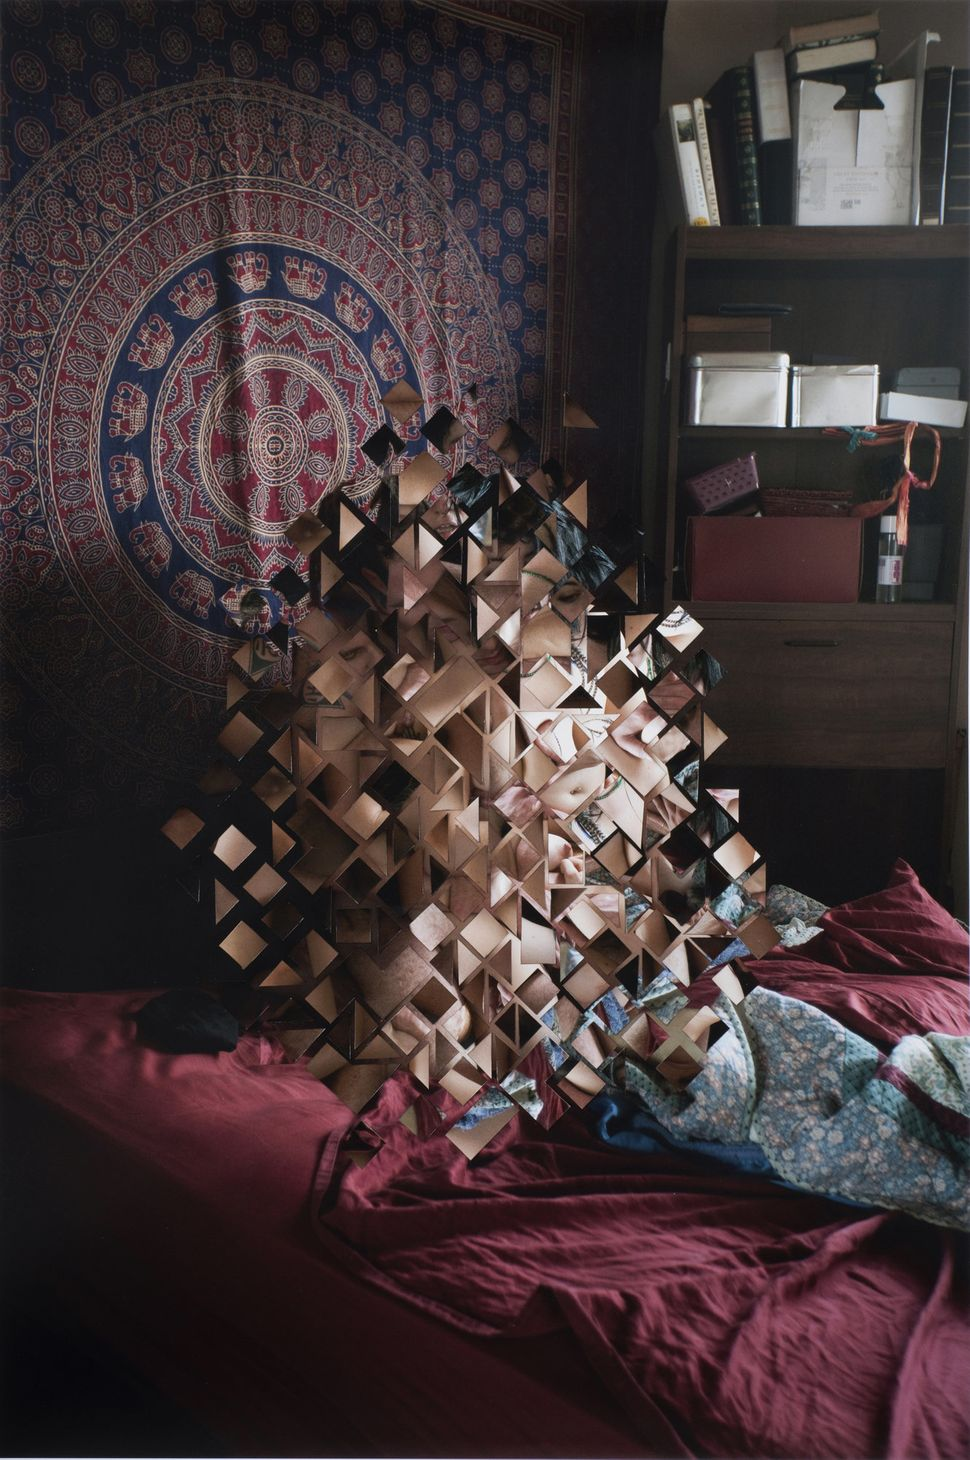 Puzzle Pieces, 2013, © Sarah Anne Johnson / Courtesy of Julie Saul Gallery, New York and Stephen Bulger Gallery, Toronto